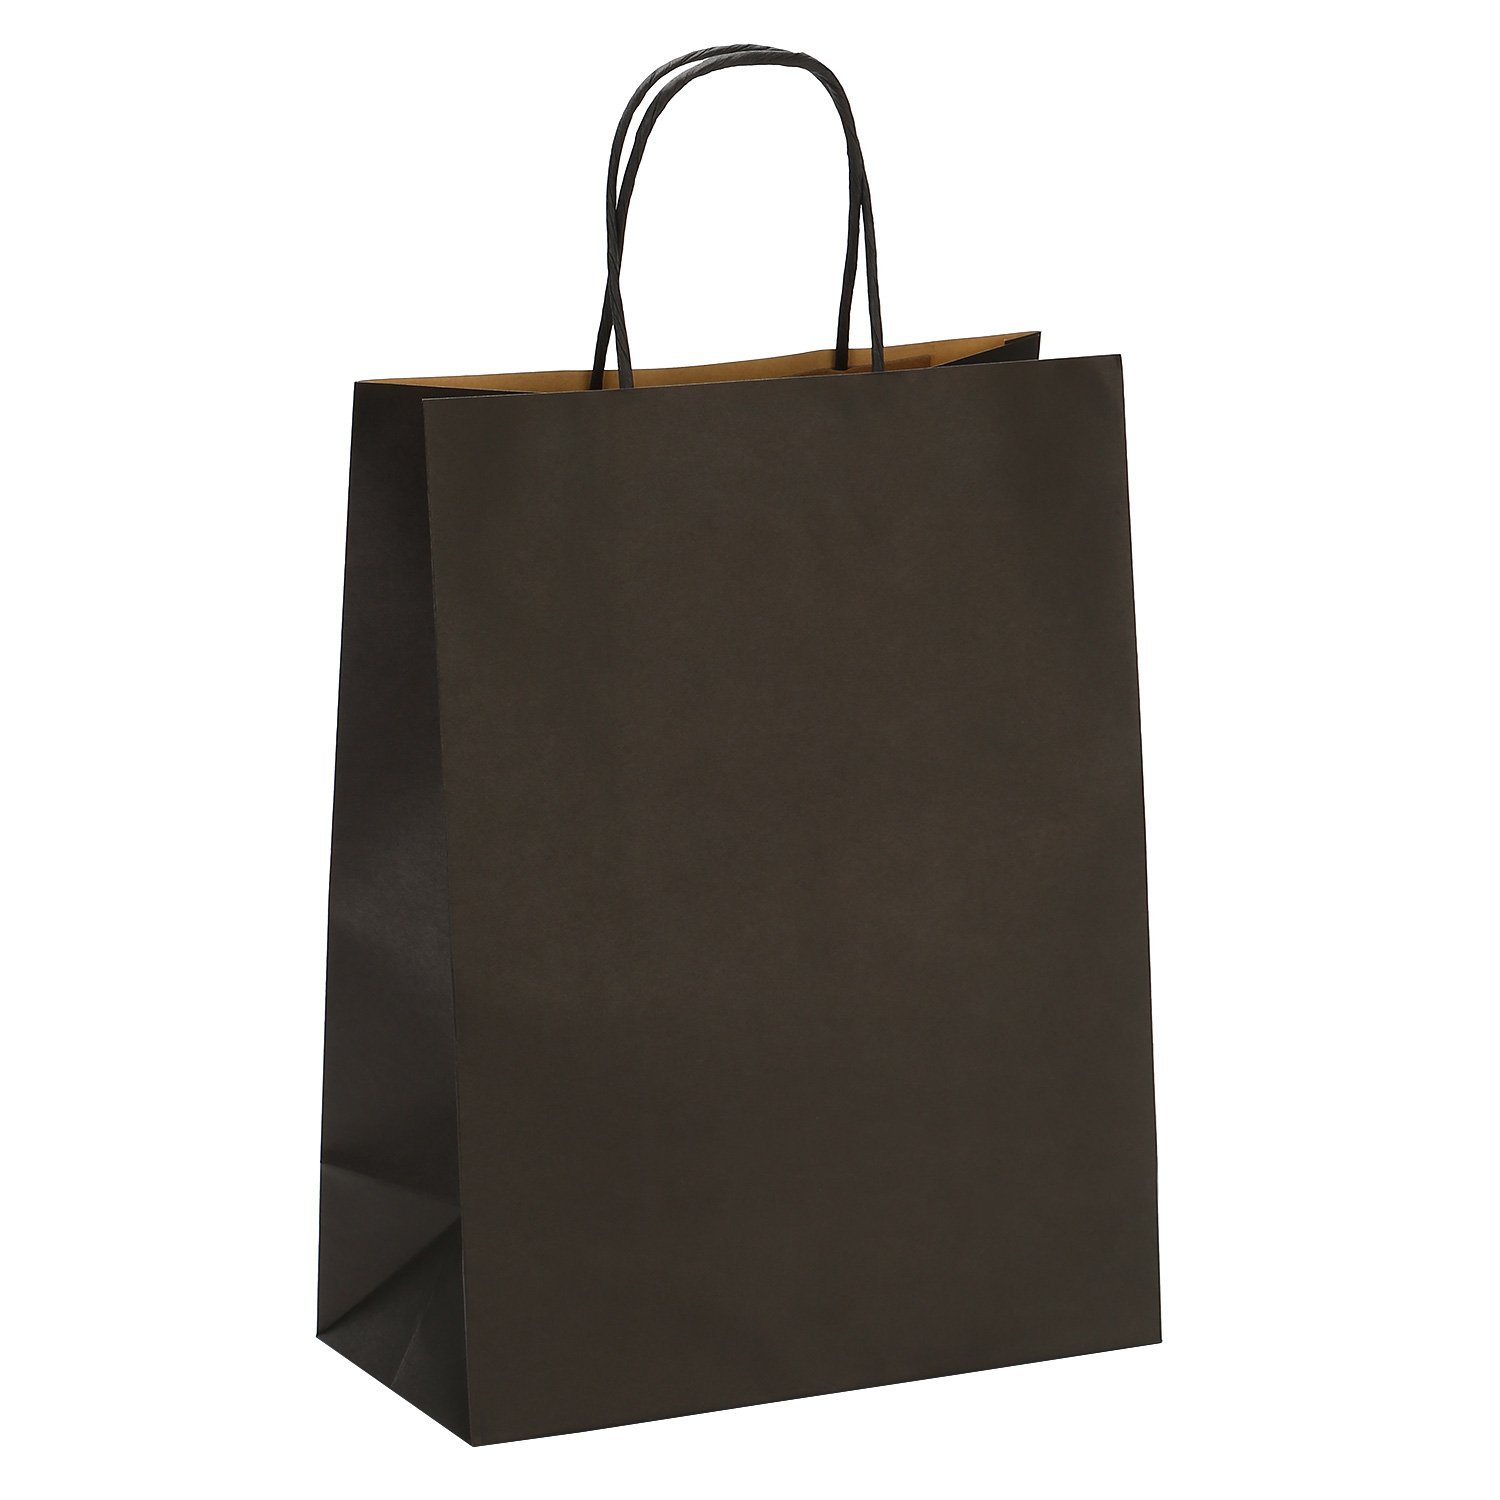 Amazon.com  Road 10x5x13 Inches 50pcs Black Kraft Paper Bags with Handle,  Gift , Shopping Bag, Merchandise , Party Bag  Health   Personal Care a89e3d87fe